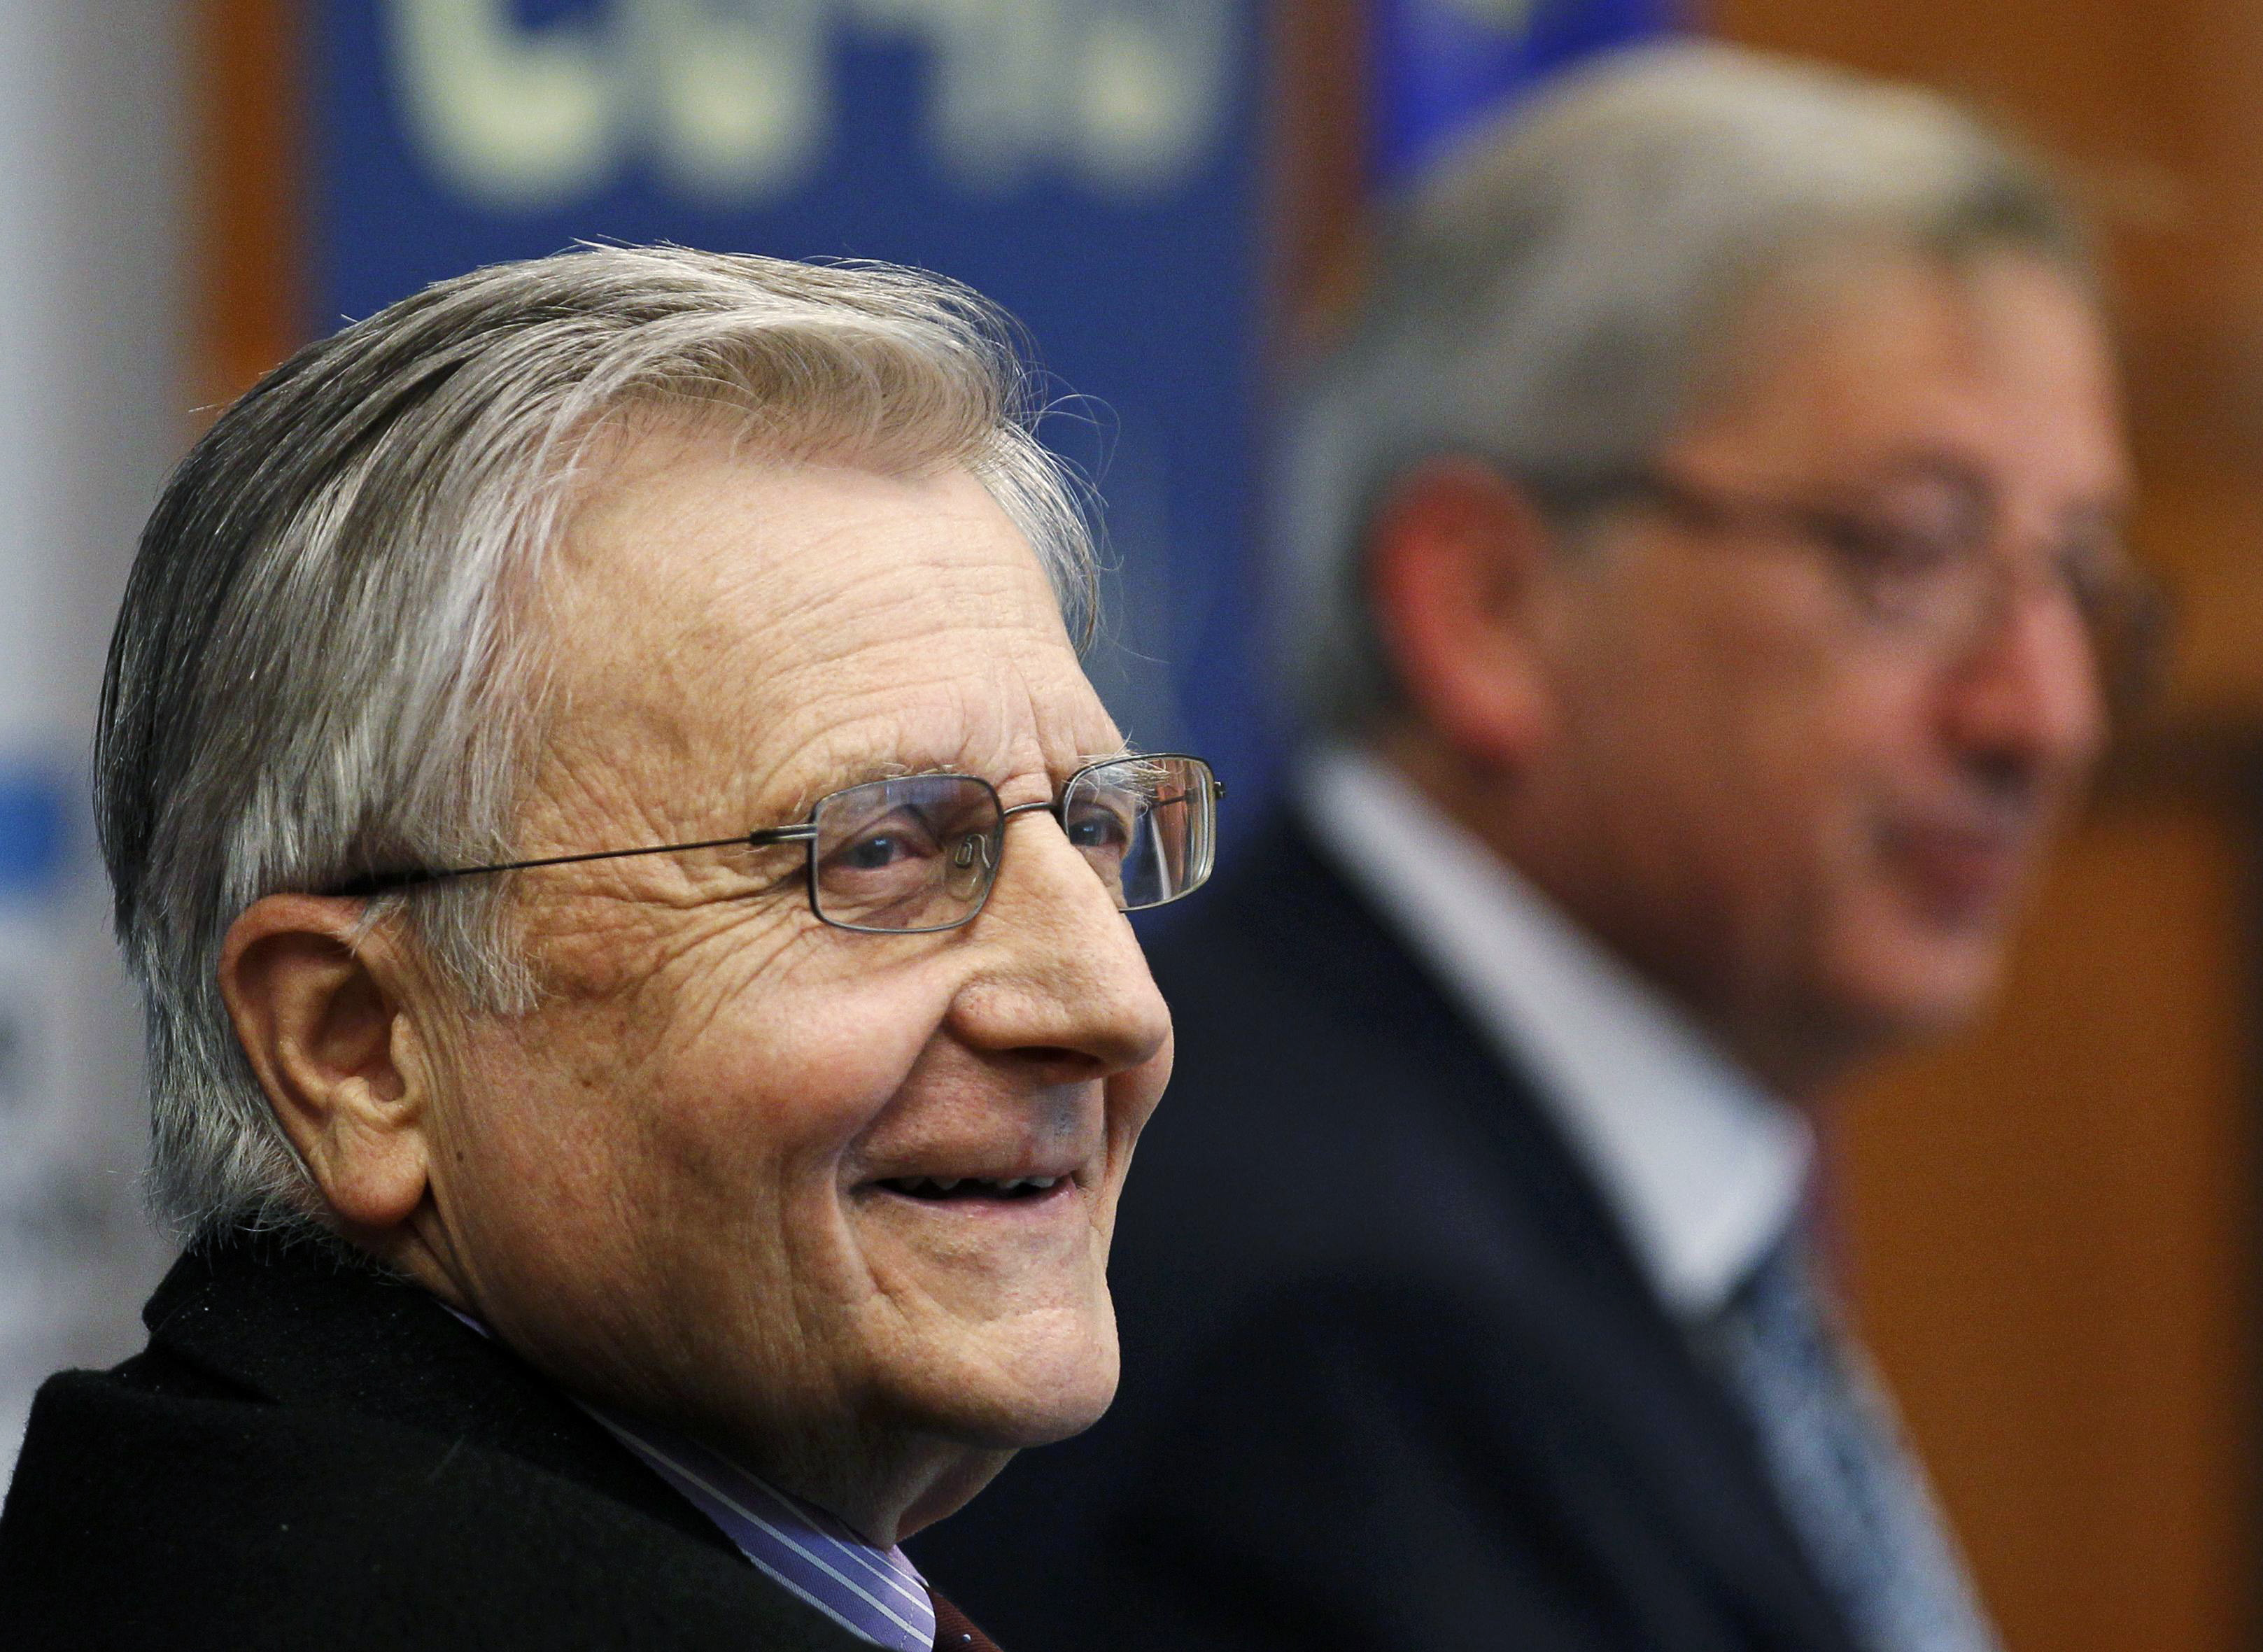 Former European Central Bank President Jean-Claude Trichet (L). @REUTERS/Yves Herman